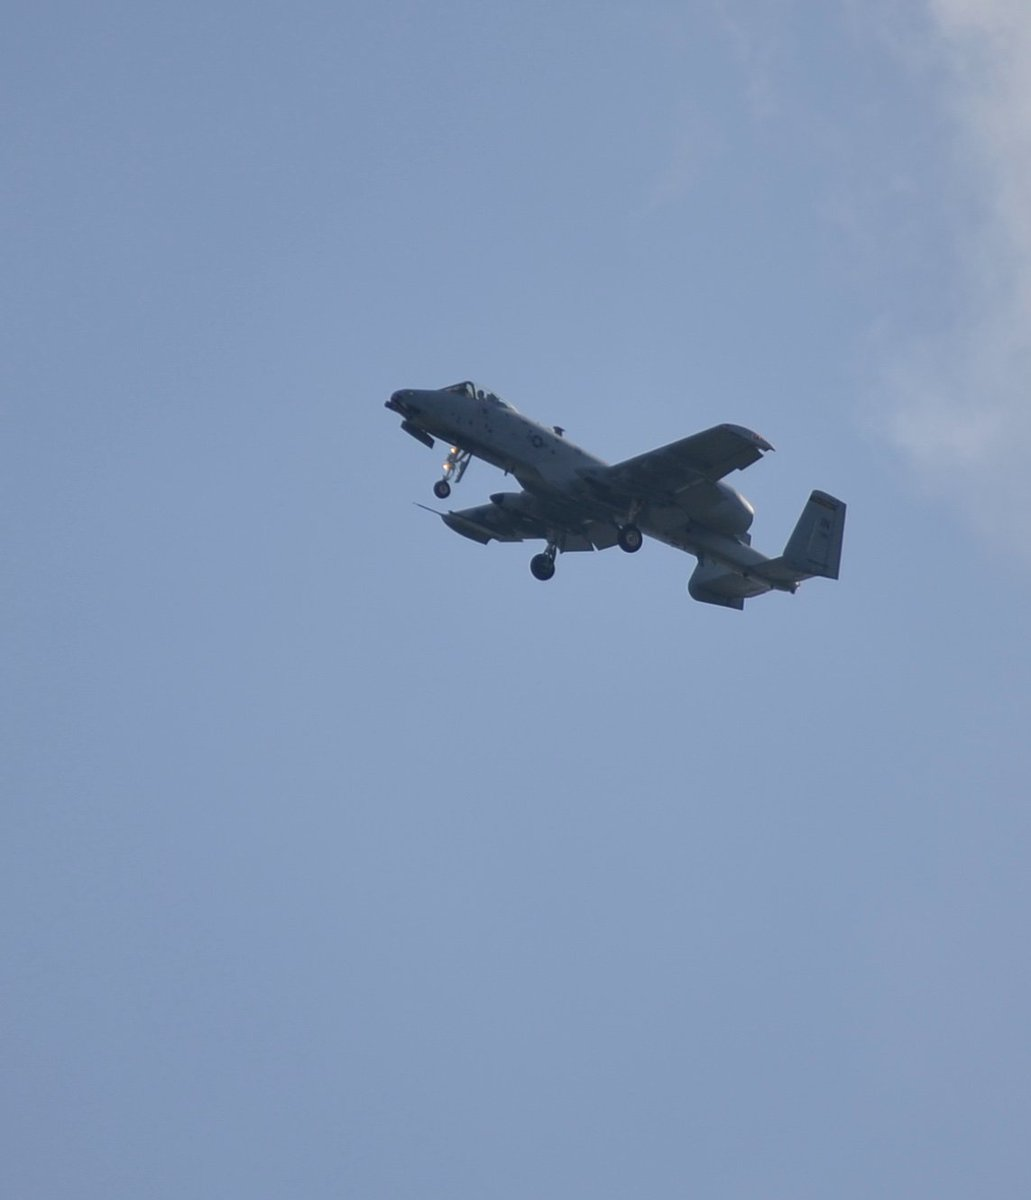 Took a few pics of jets that flew over our home during  #ThunderOverLo...